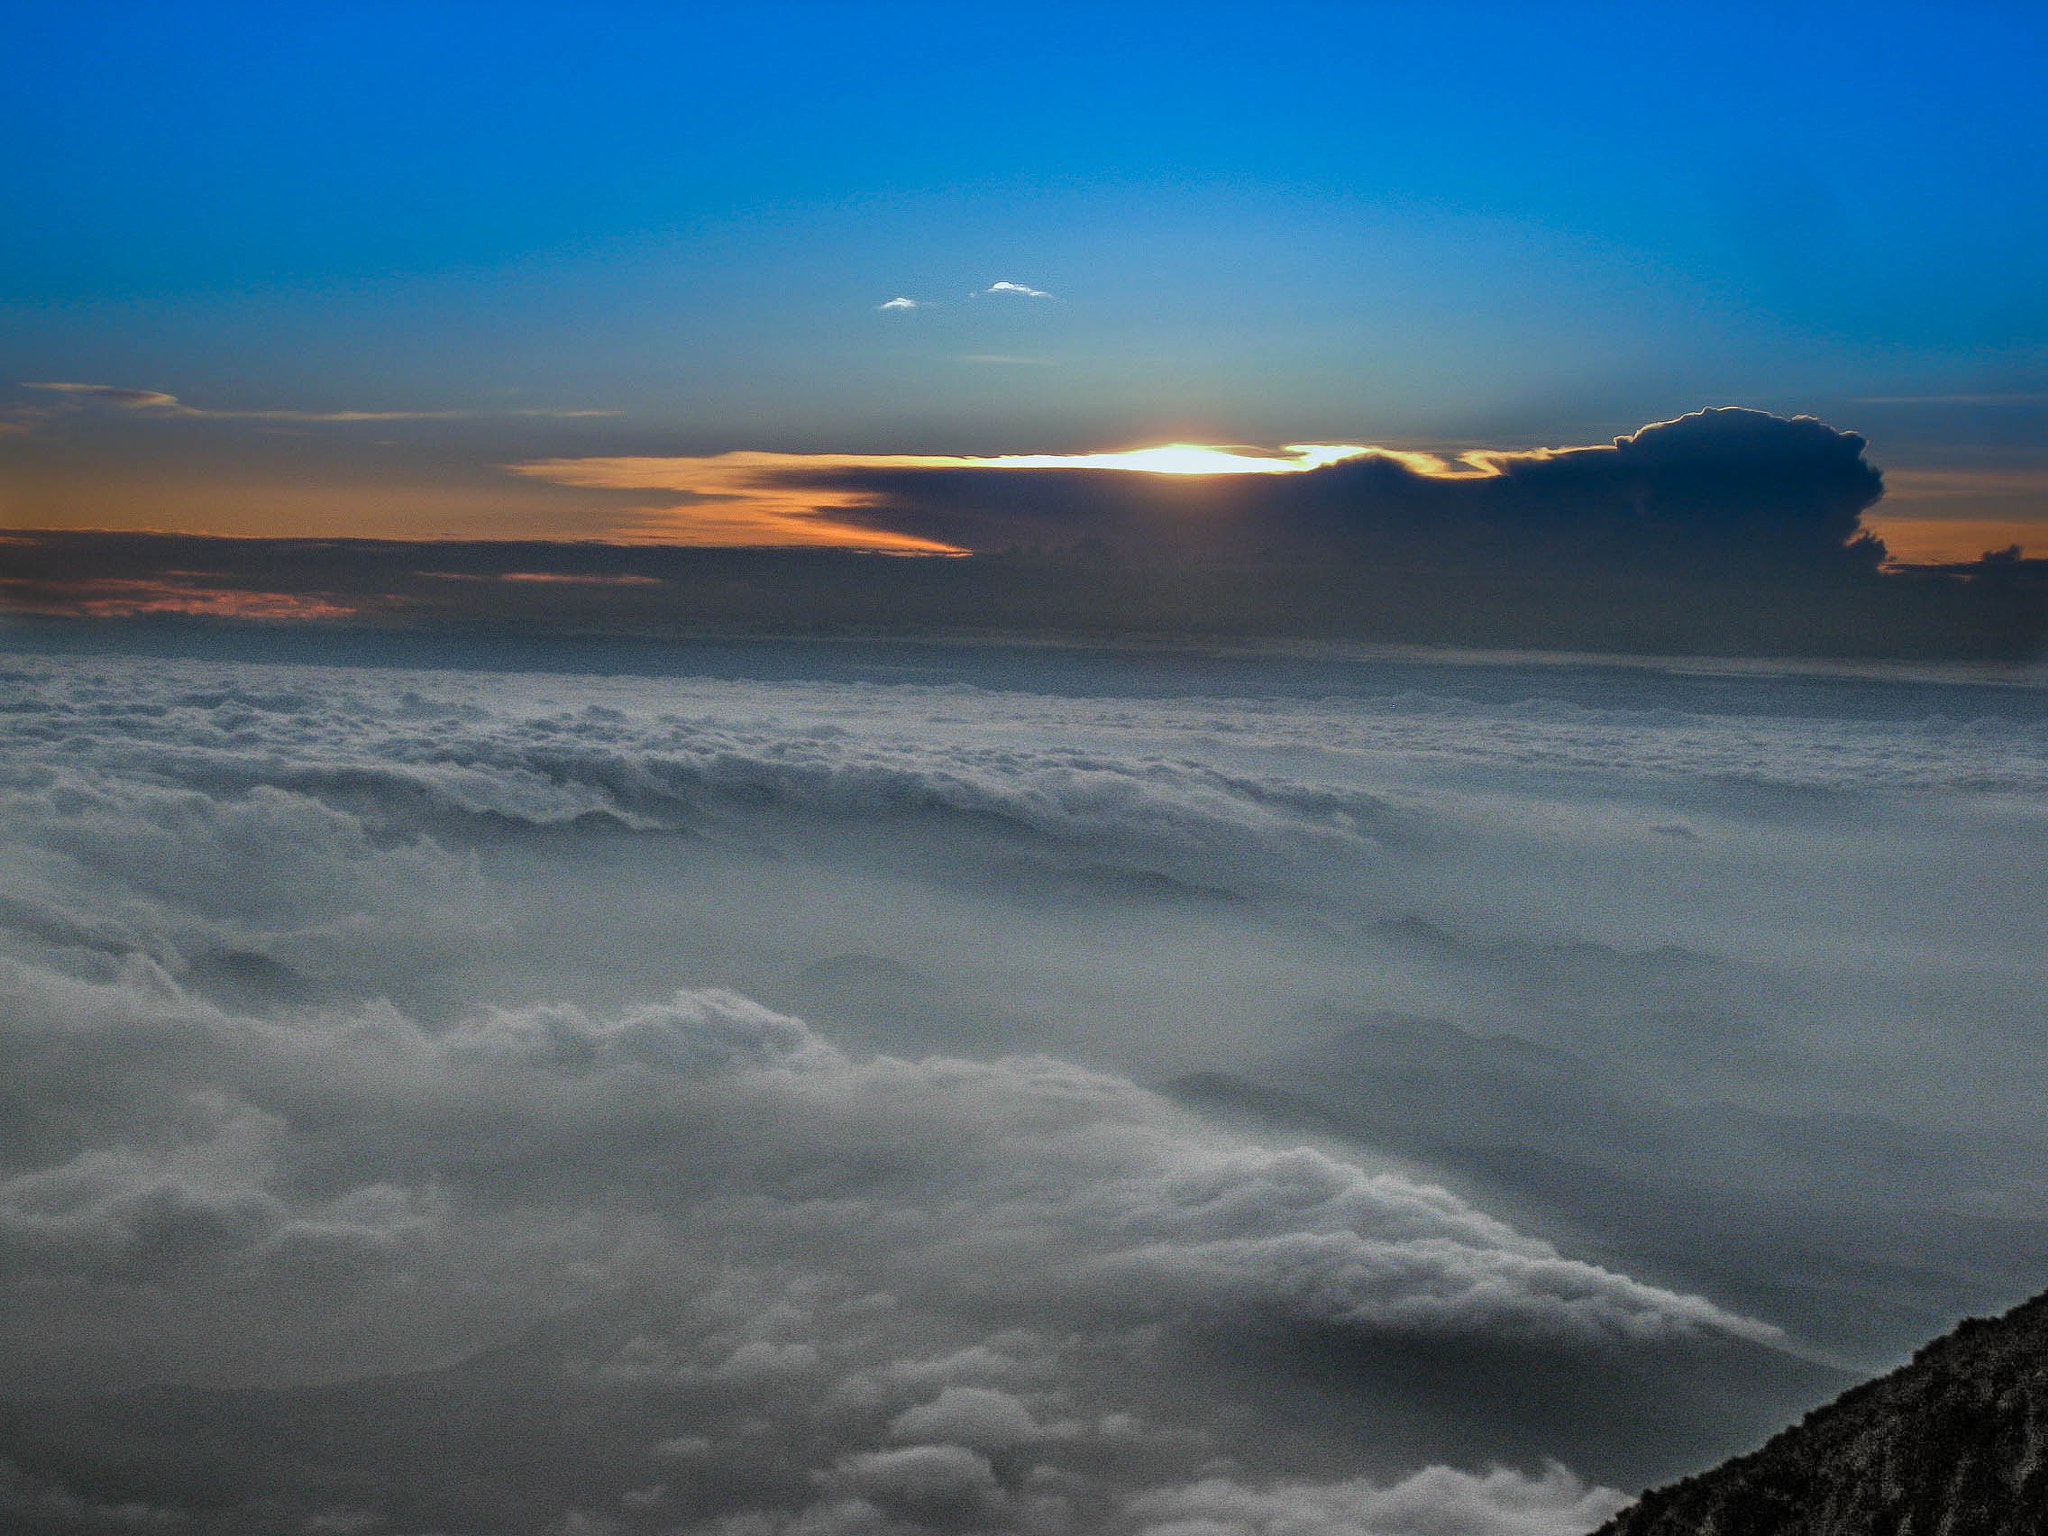 Photograph On top of Mt. Fuji by Jersey Joe on 500px